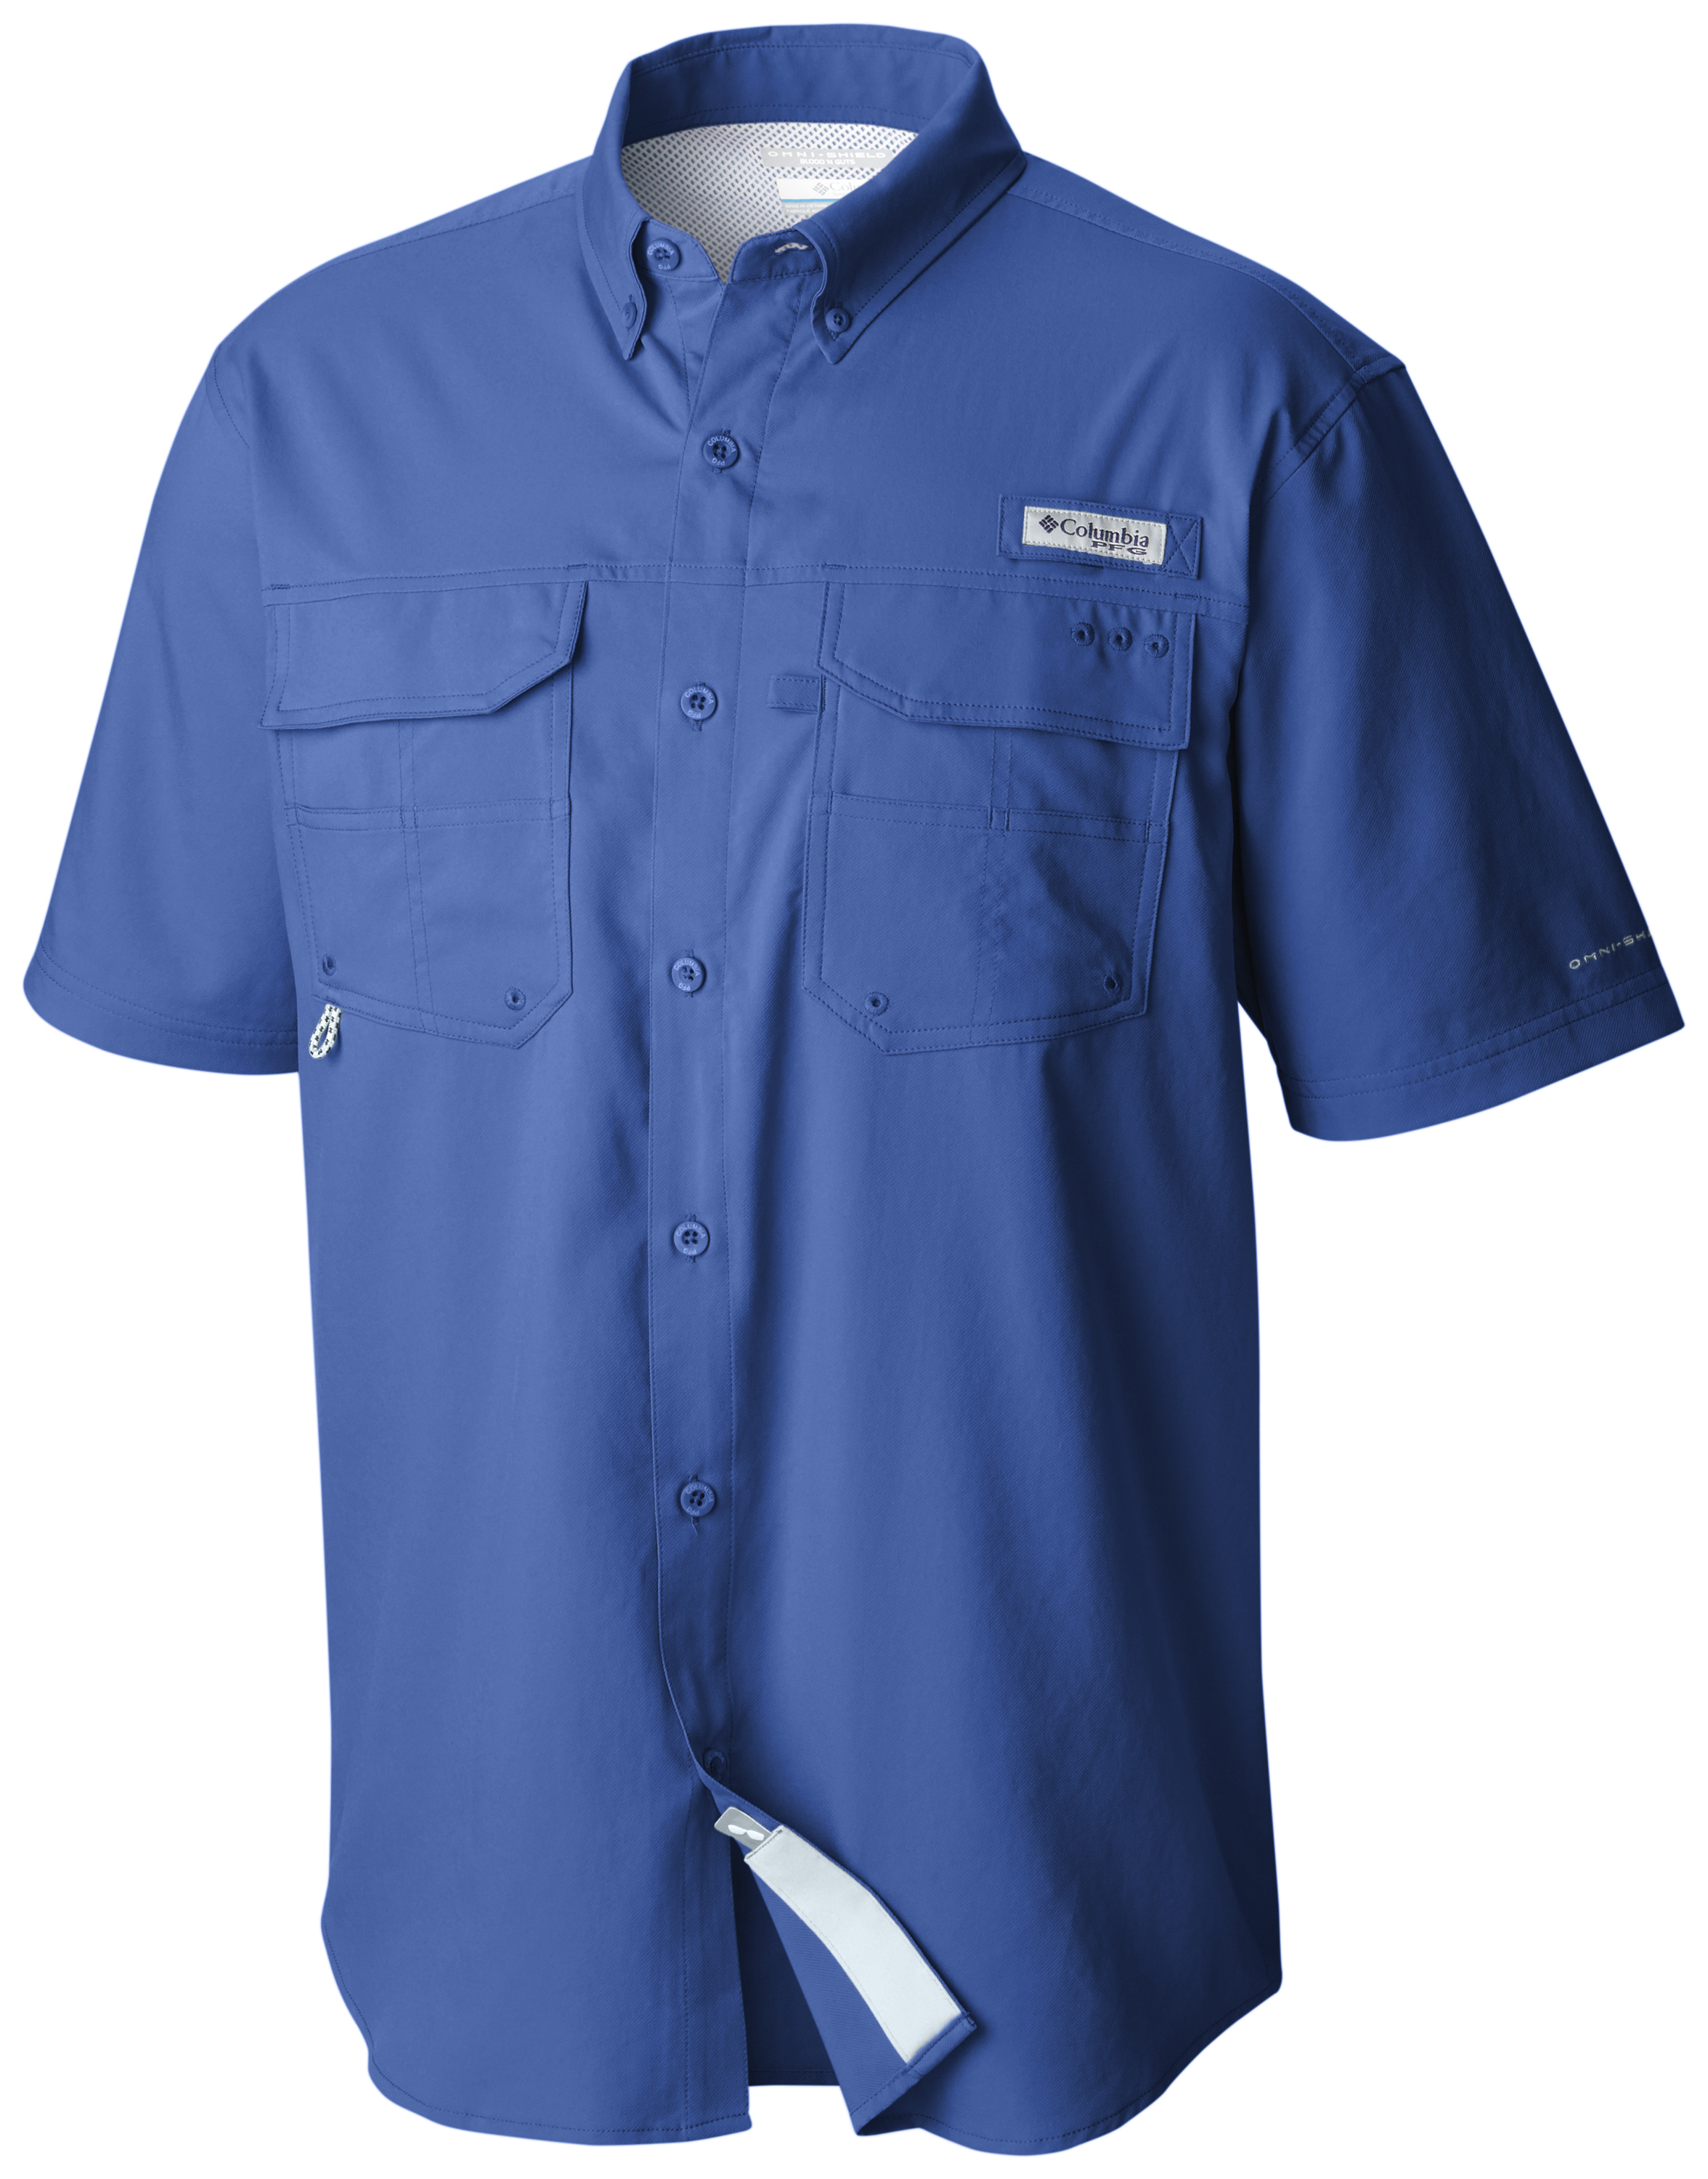 04412bb0b1b ... CasualColumbia Sportswear Blood and Guts™ III Short Sleeve Shirt.  S18_1577221_683_f. S17_1577221_316_f. F16_1577221_487_f